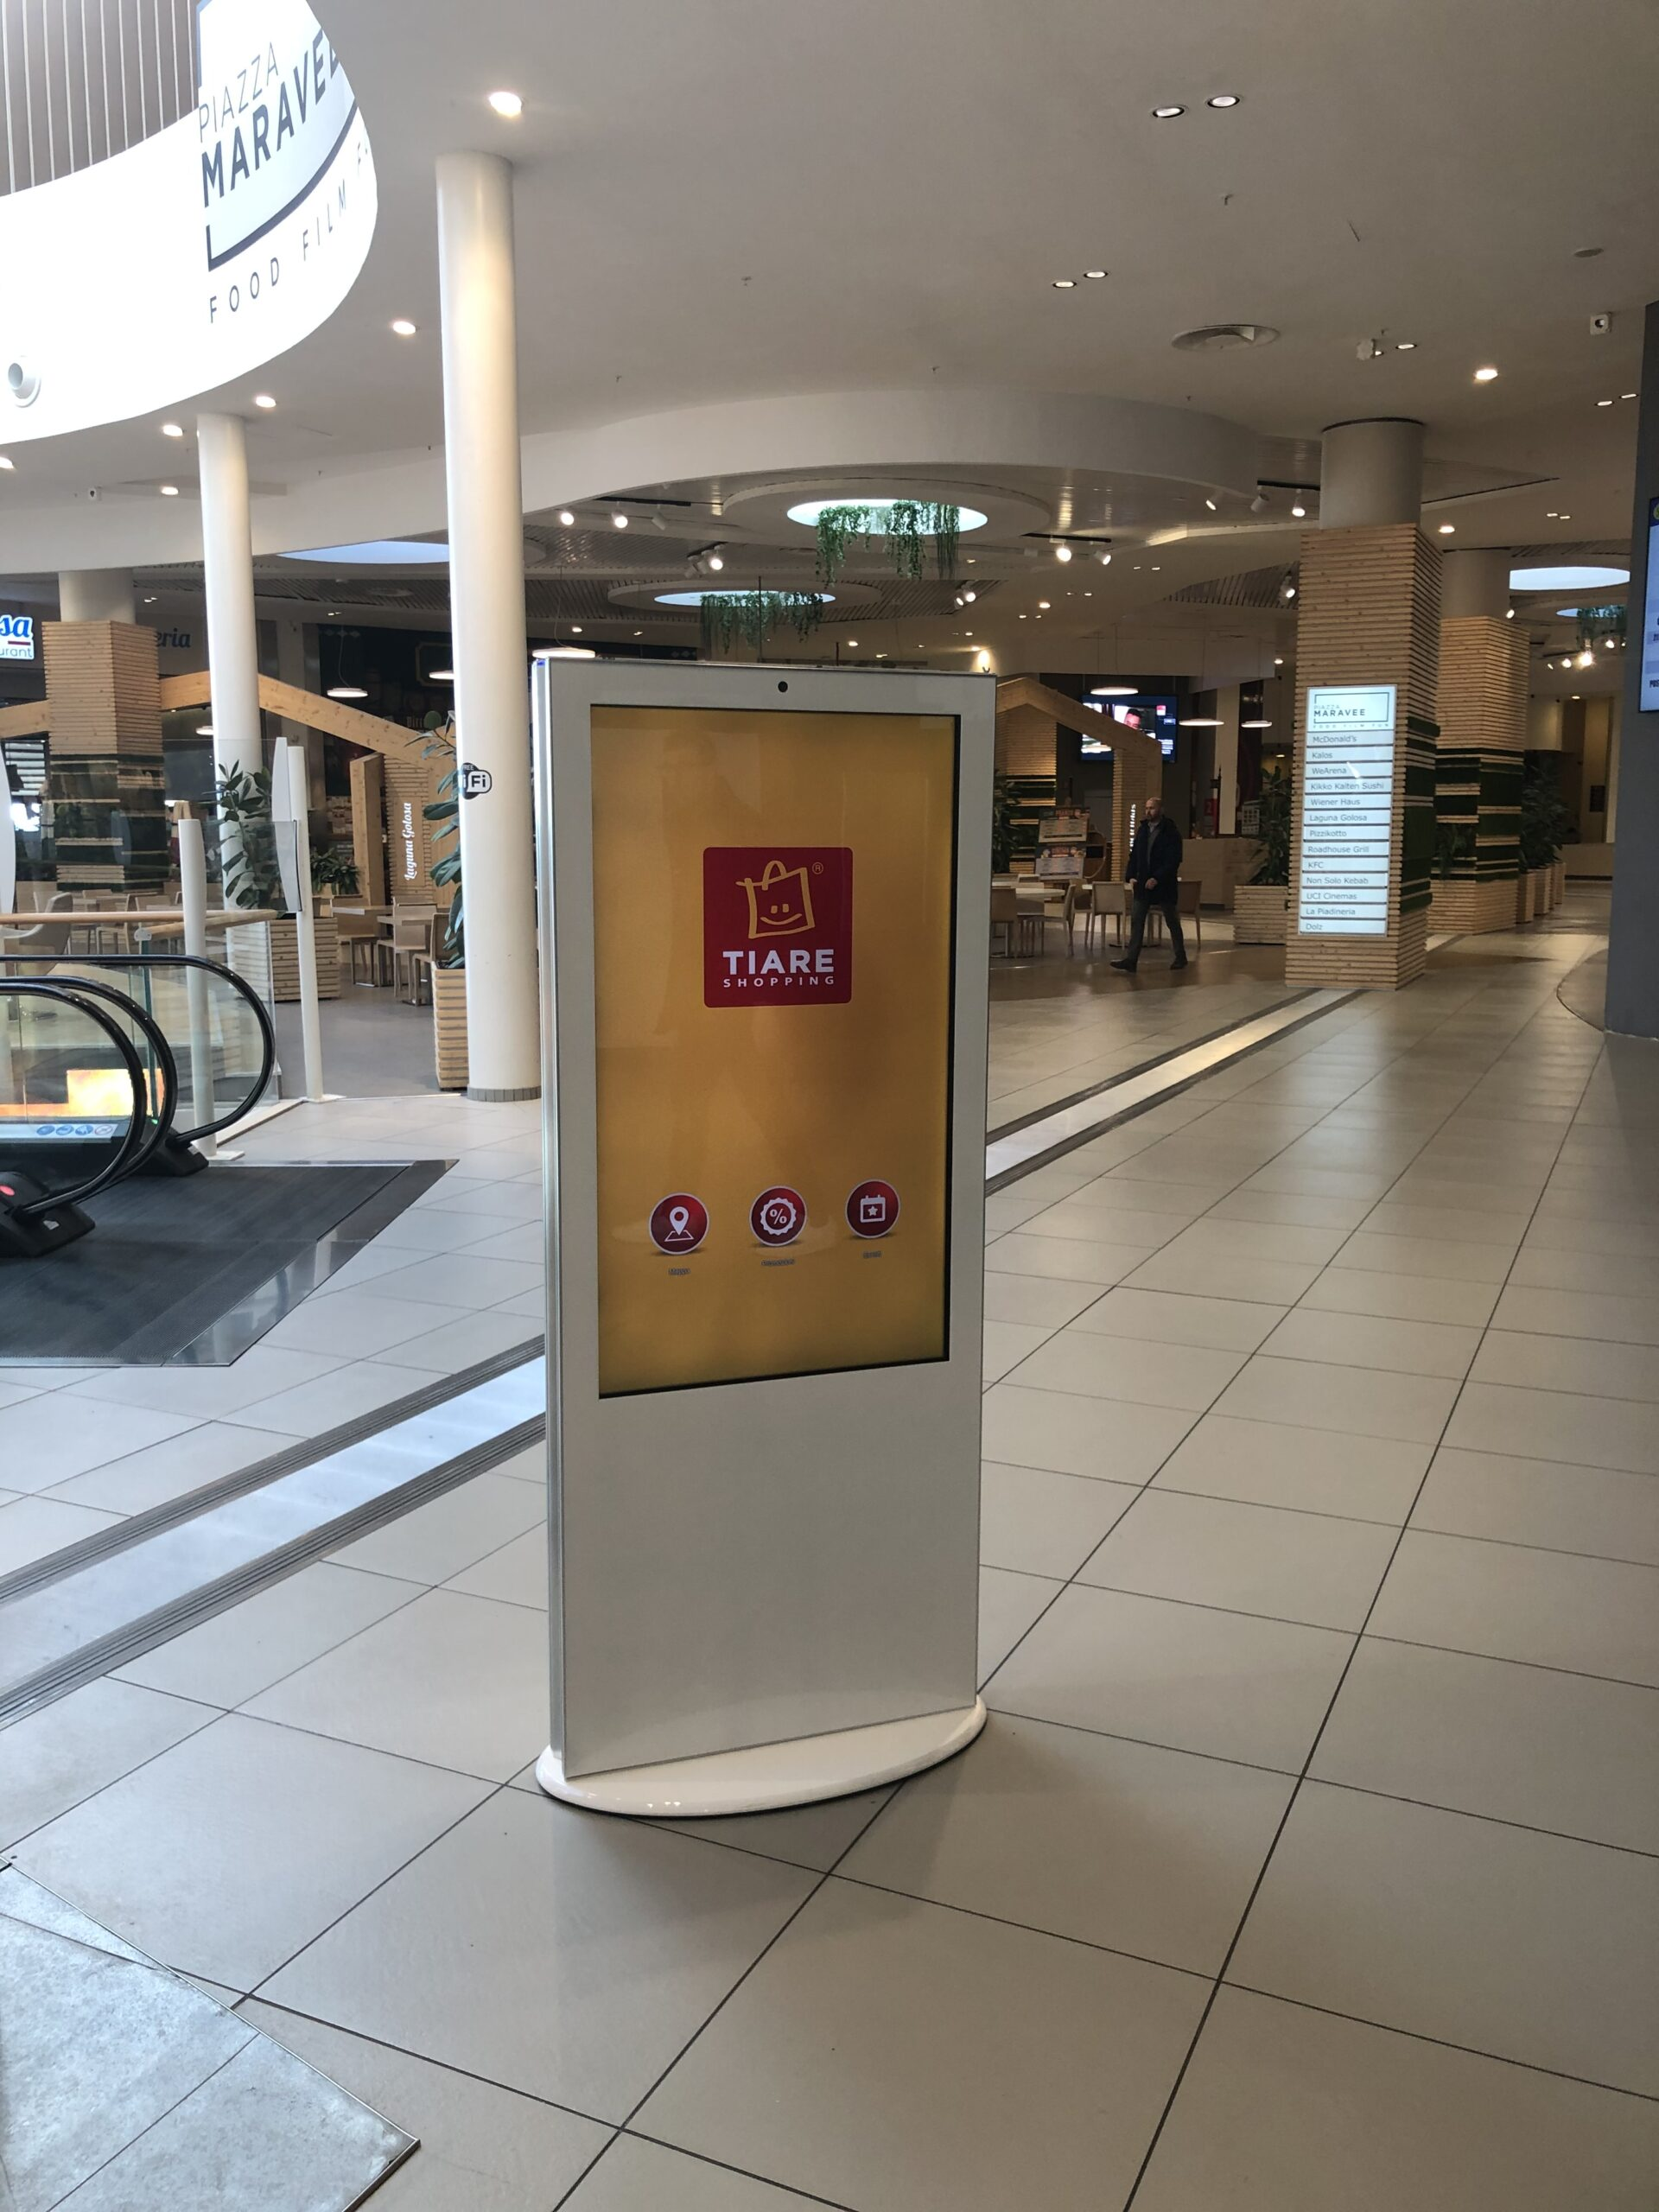 Totem centro commerciale Tiare Shopping